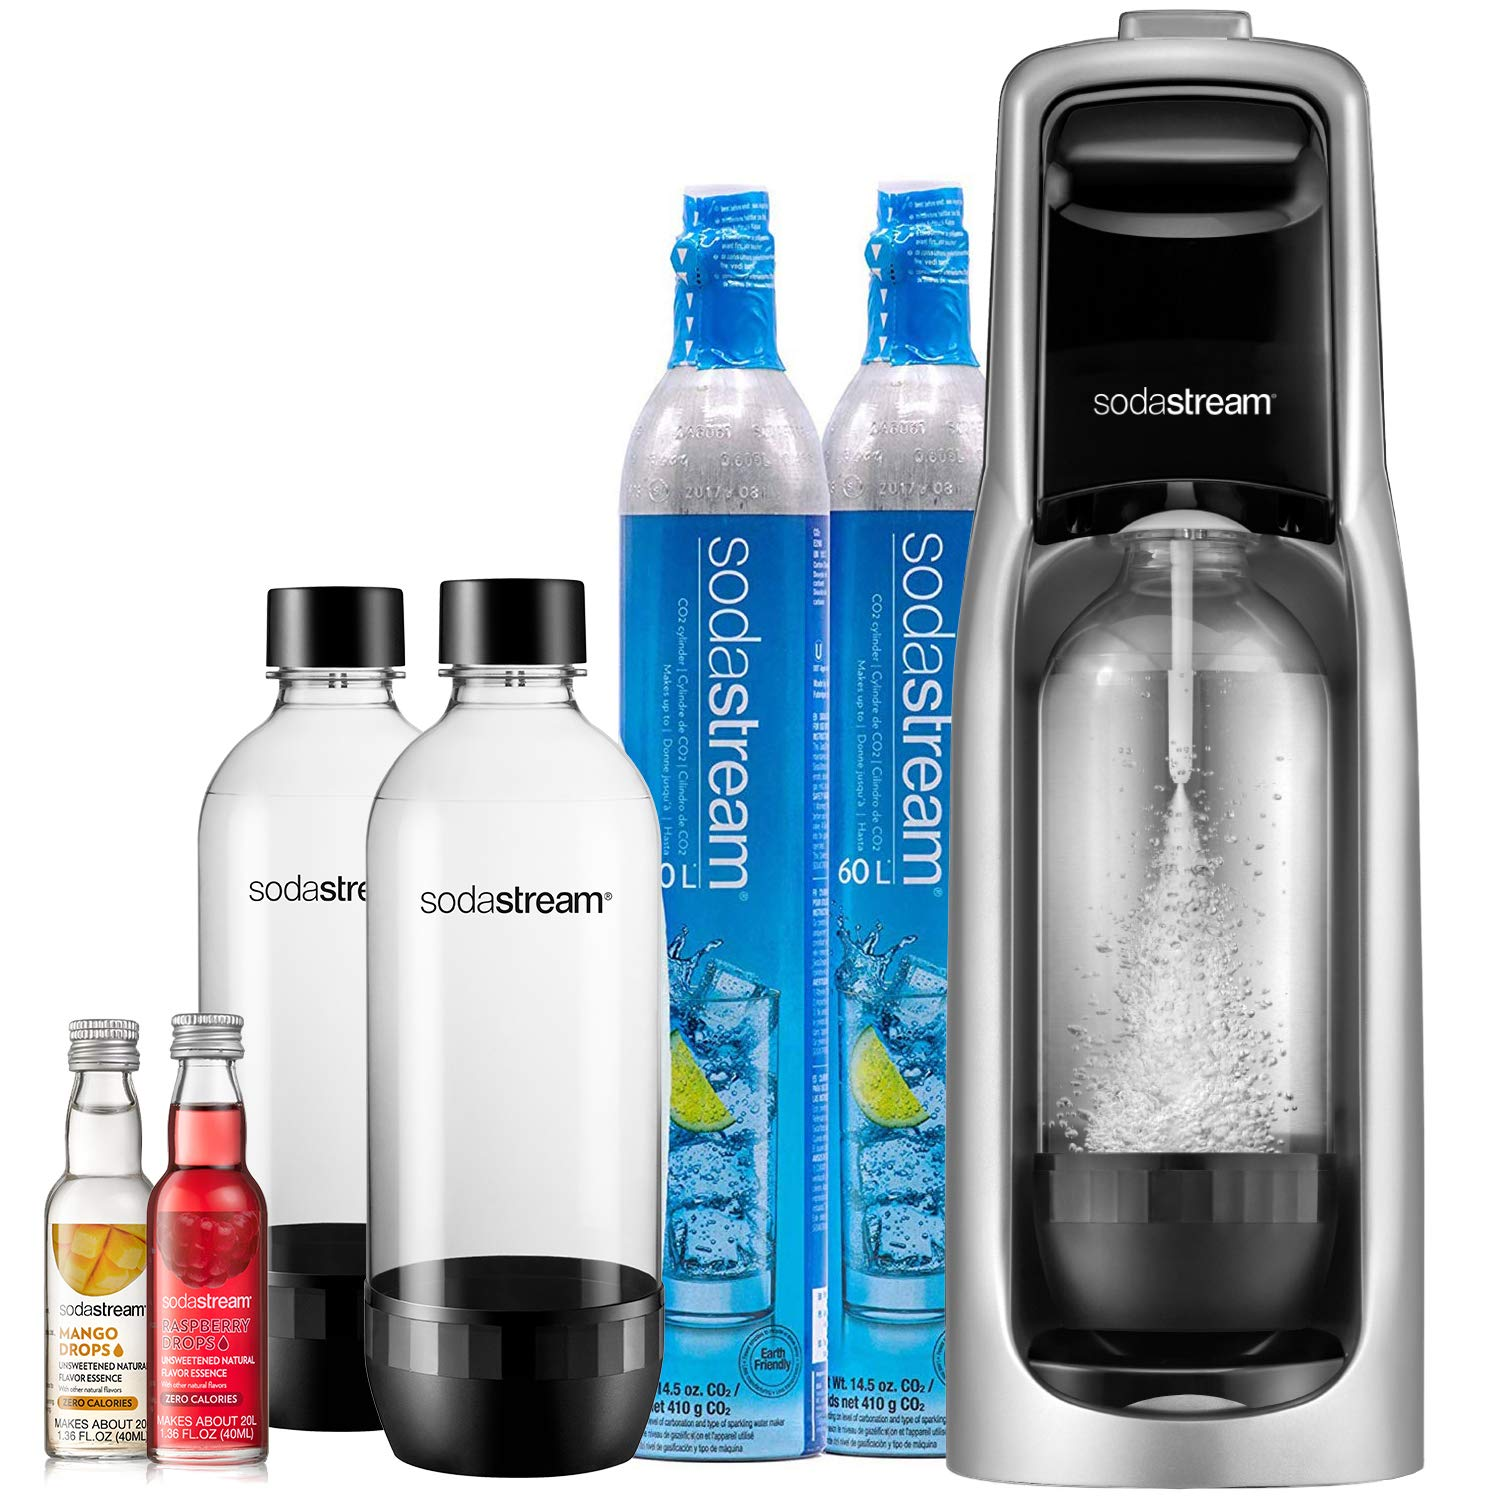 SodaStream Jet Sparkling Water Maker Bundle (Silver) with CO2, BPA free Bottles, and 0 Calorie Fruit Drops Flavors by sodastream